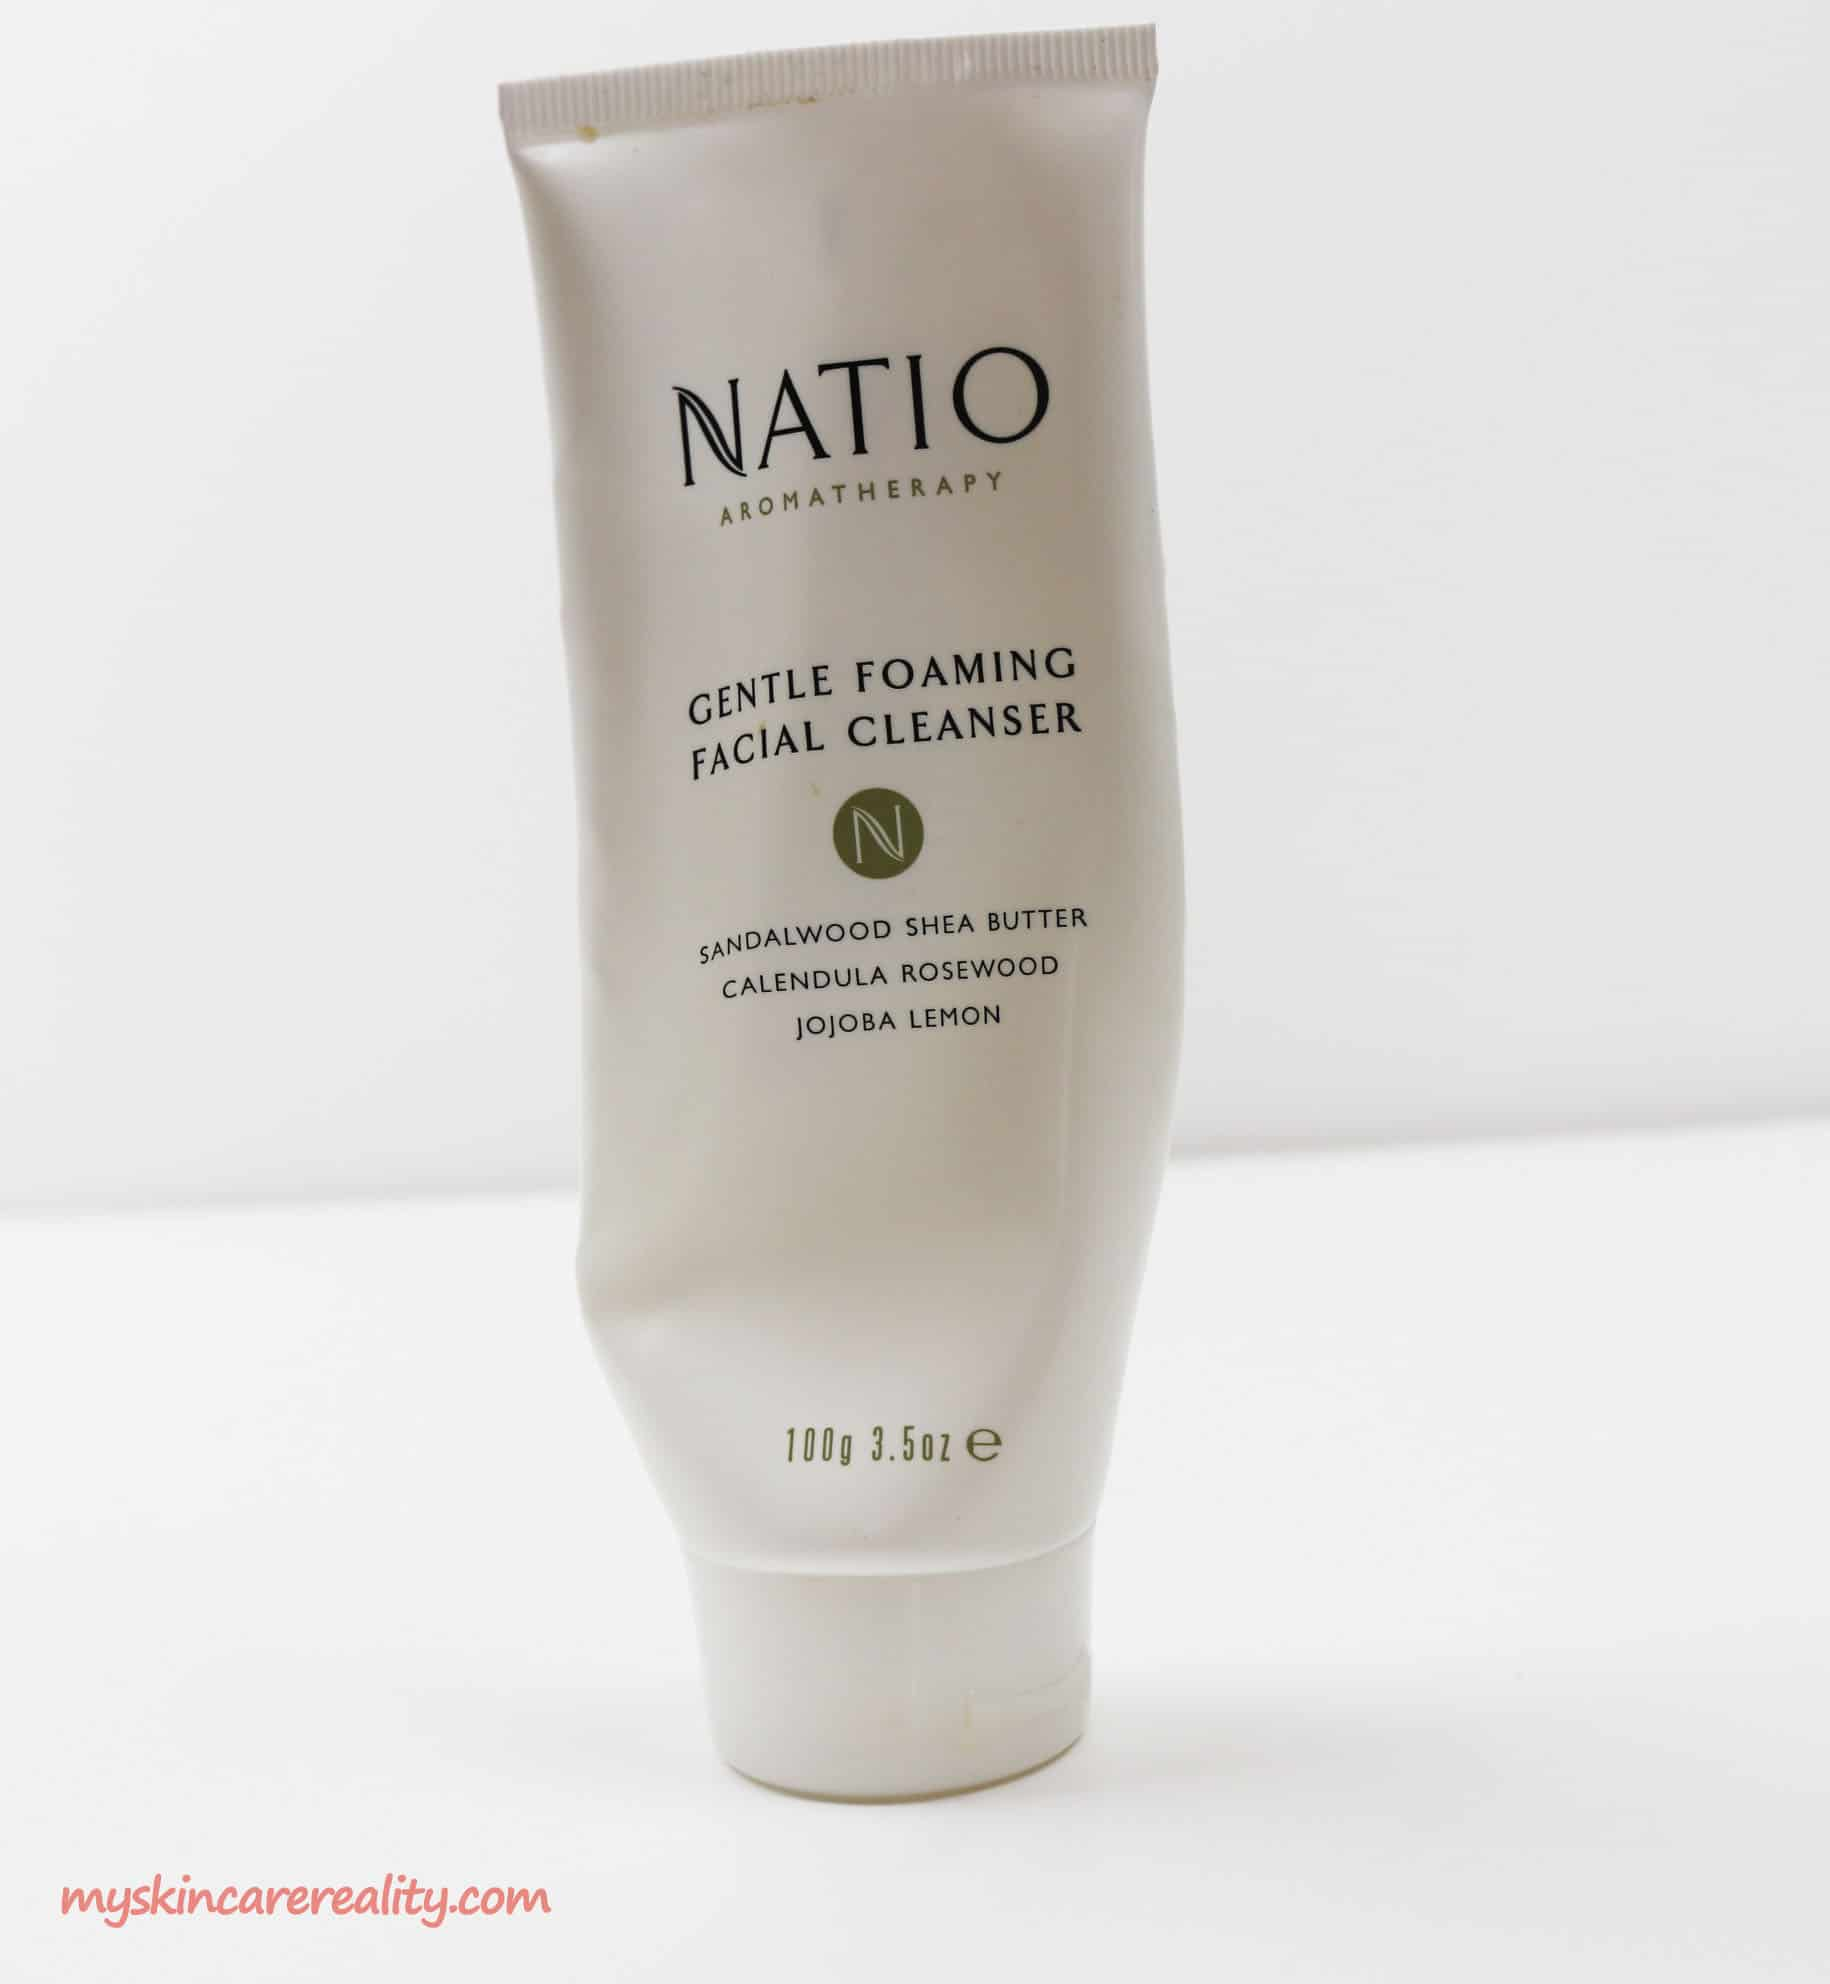 Natio Aromatherapy Gentle Foaming Facial Cleanser Review